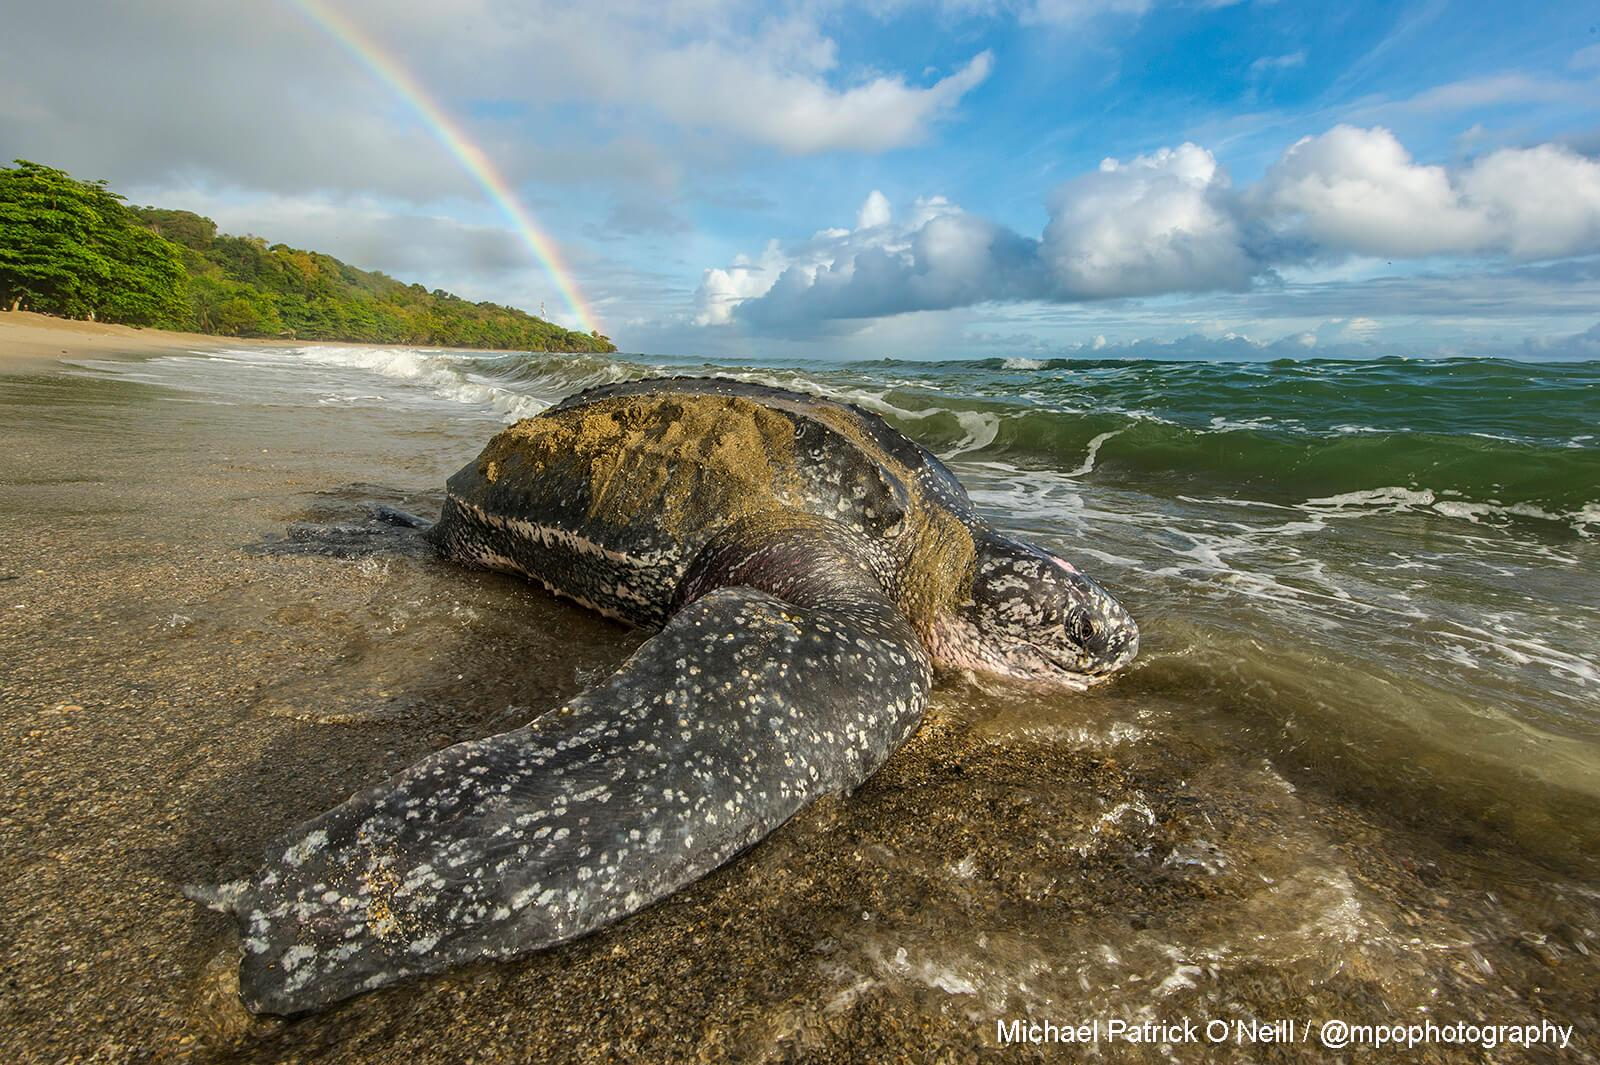 Turtle. Underwater Photography by Michael Patrick O'Neill